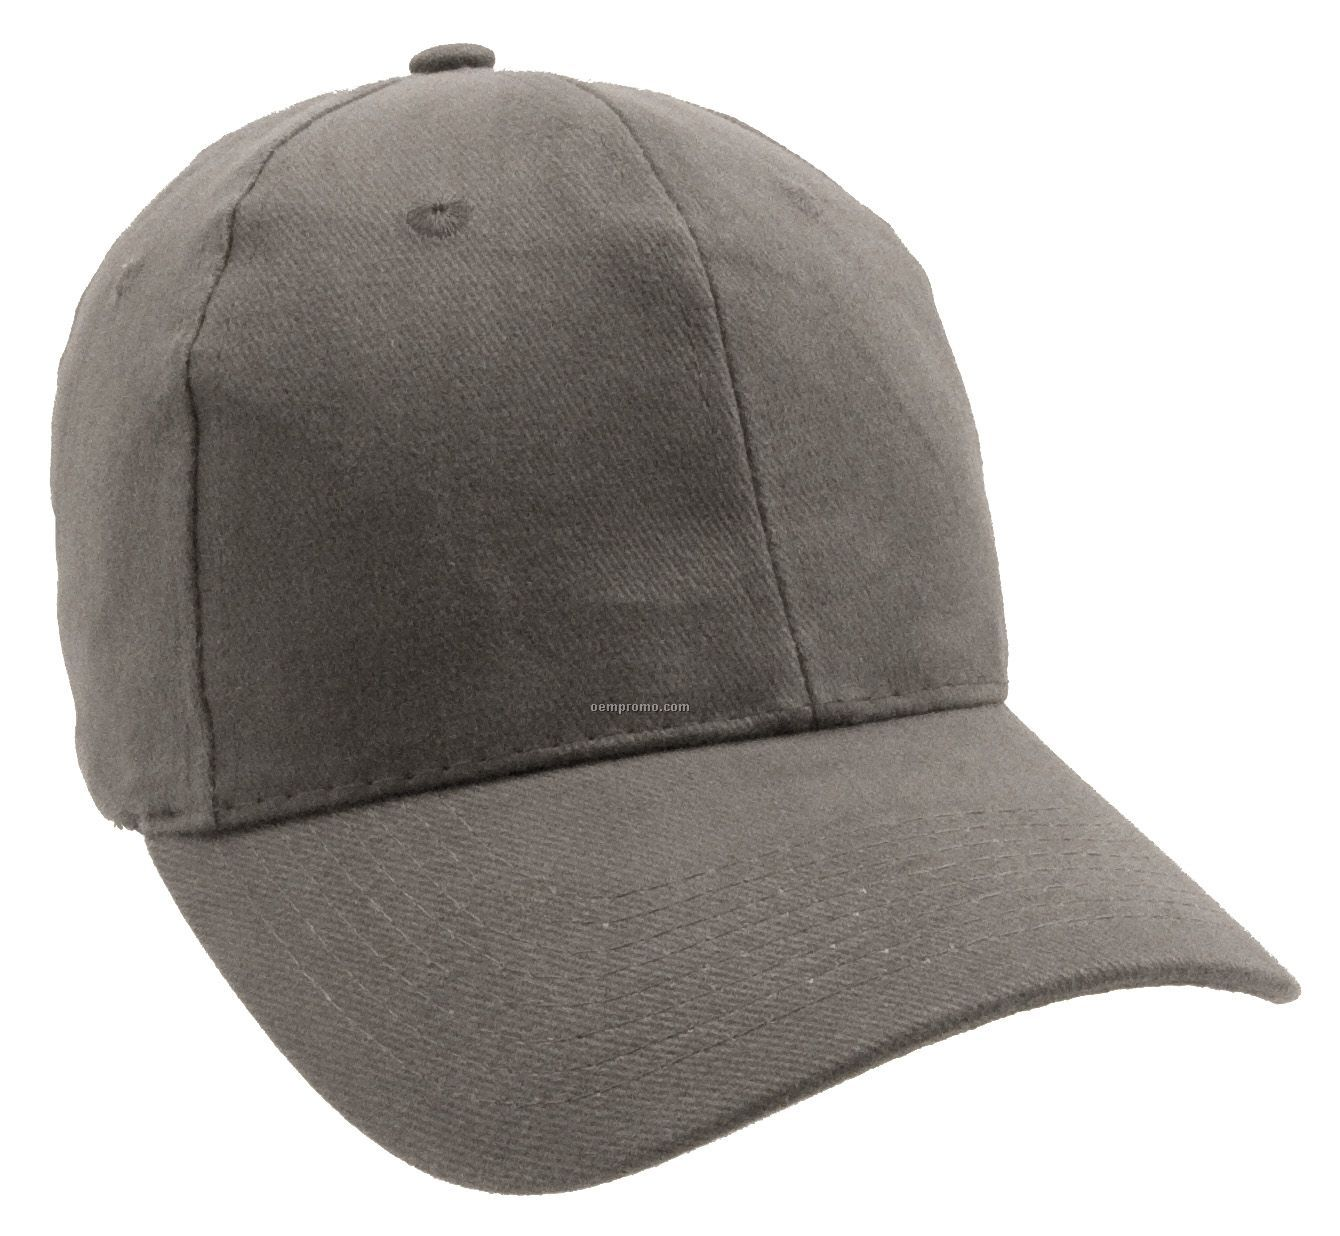 Heavyweight Washed Brushed Twill Cap (Overseas 6-7 Week Delivery)